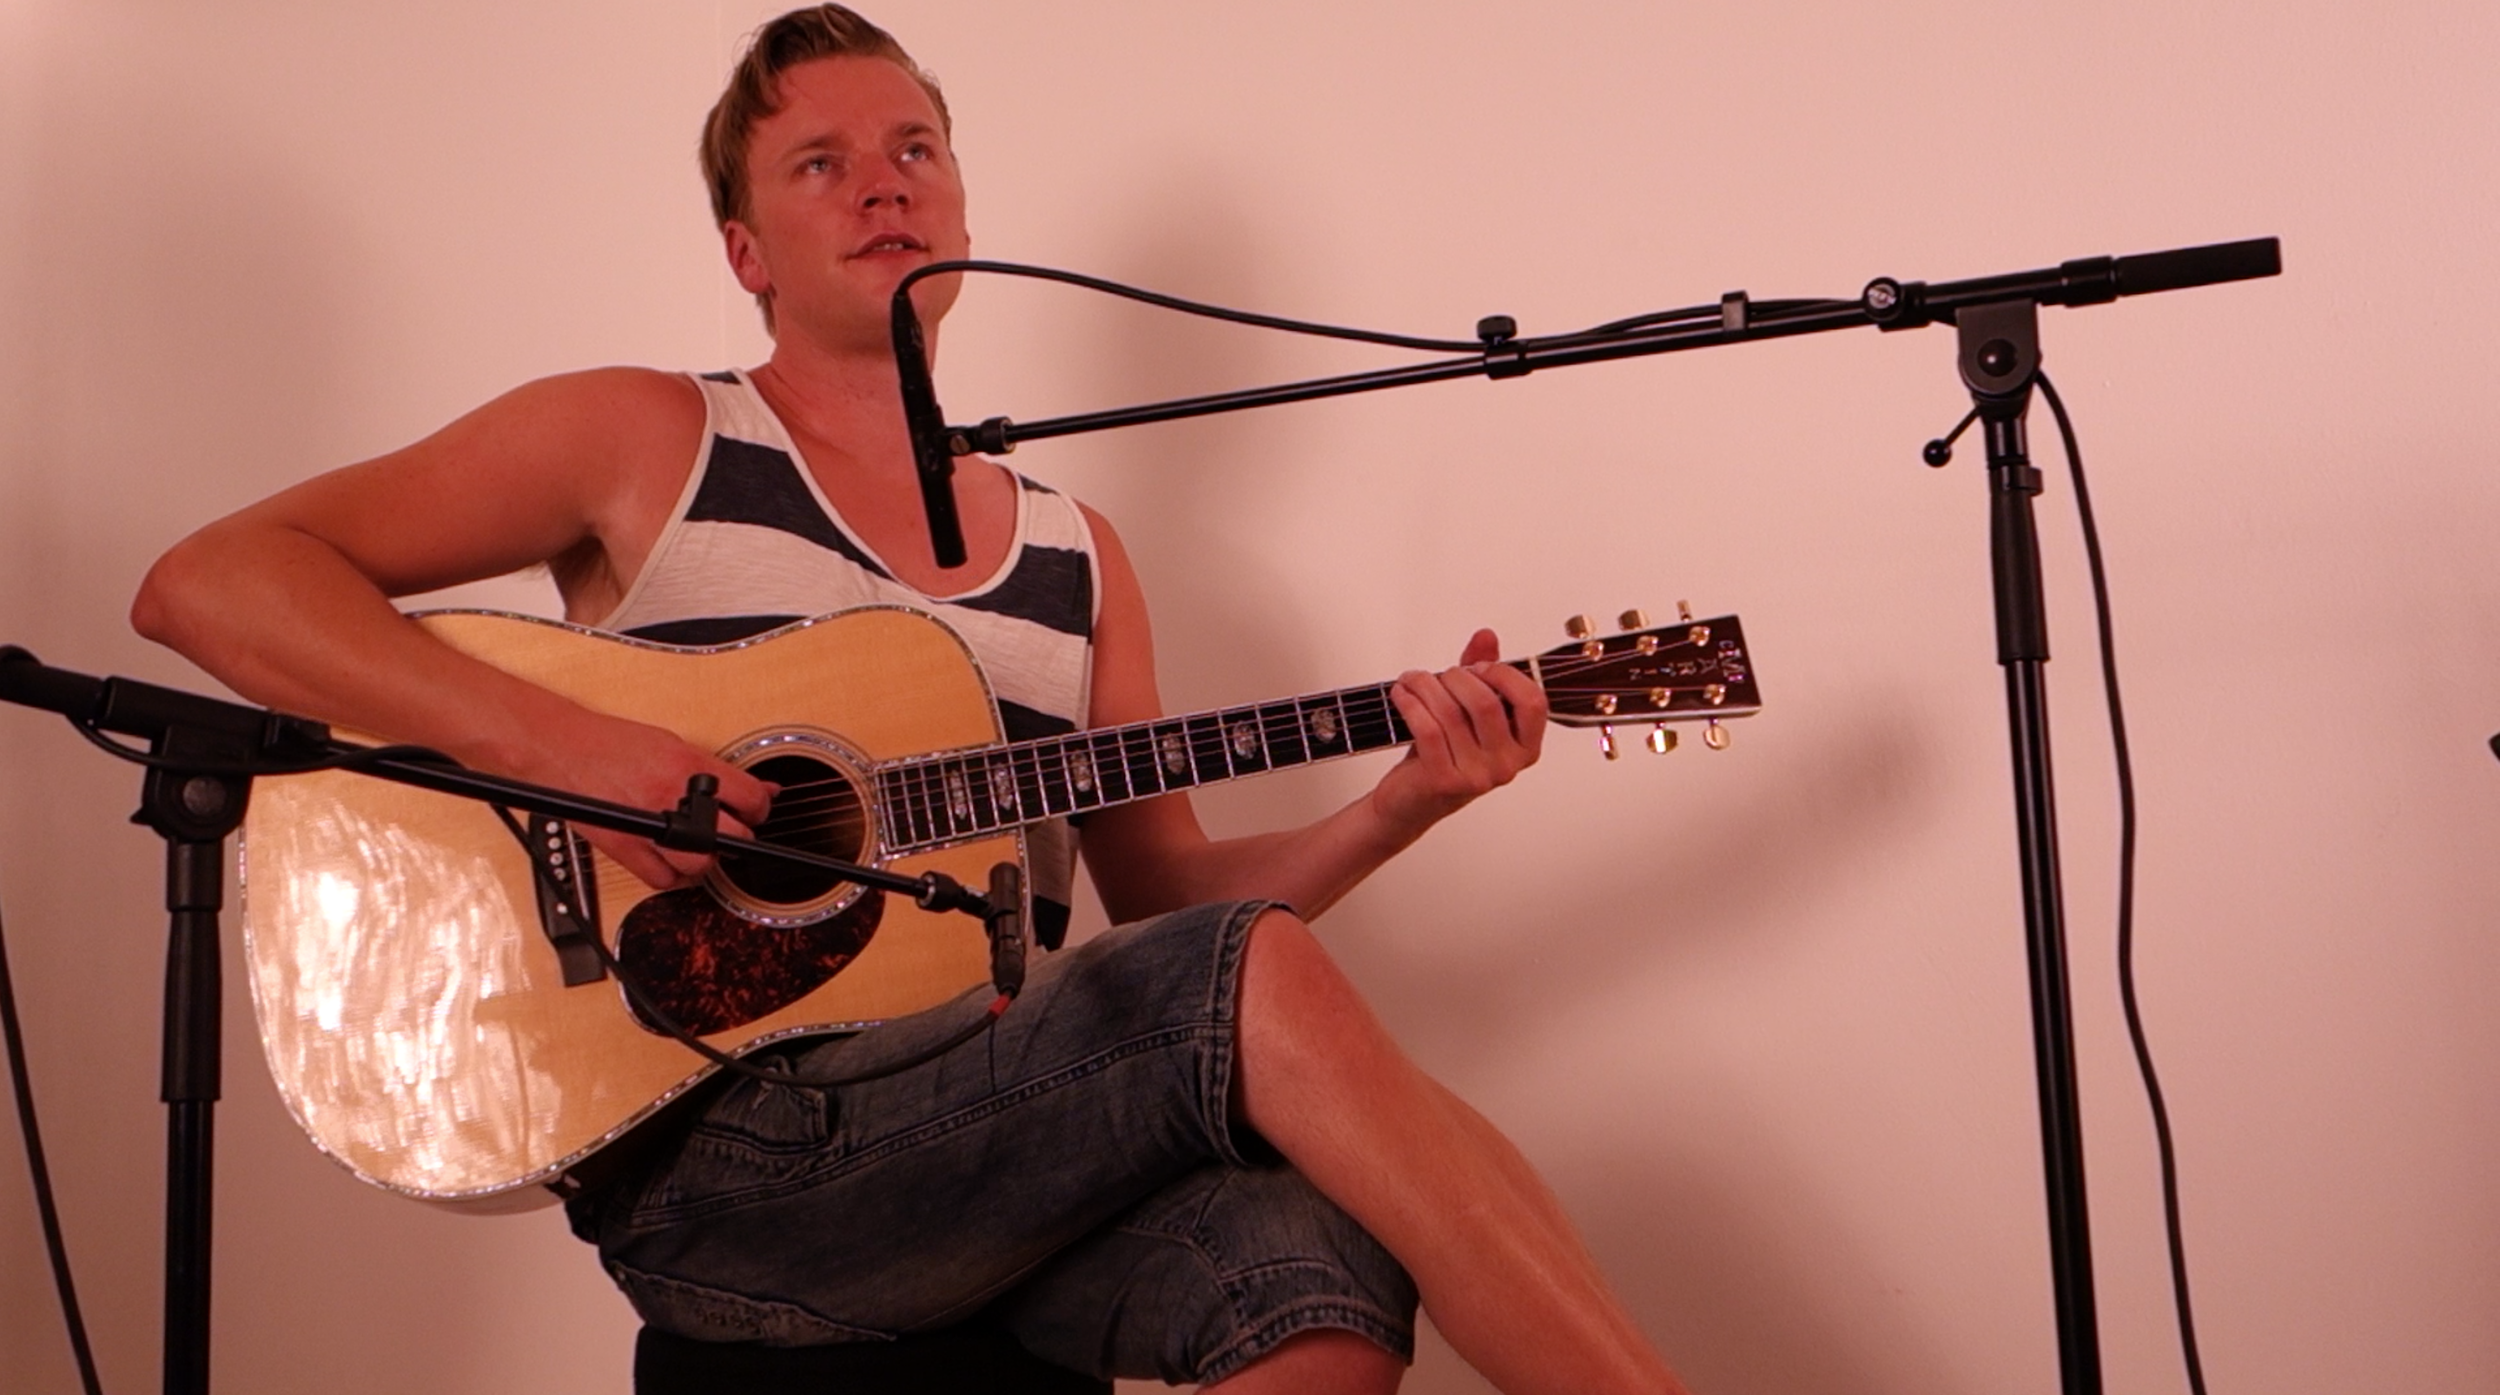 Recording an upcoming acoustic song.